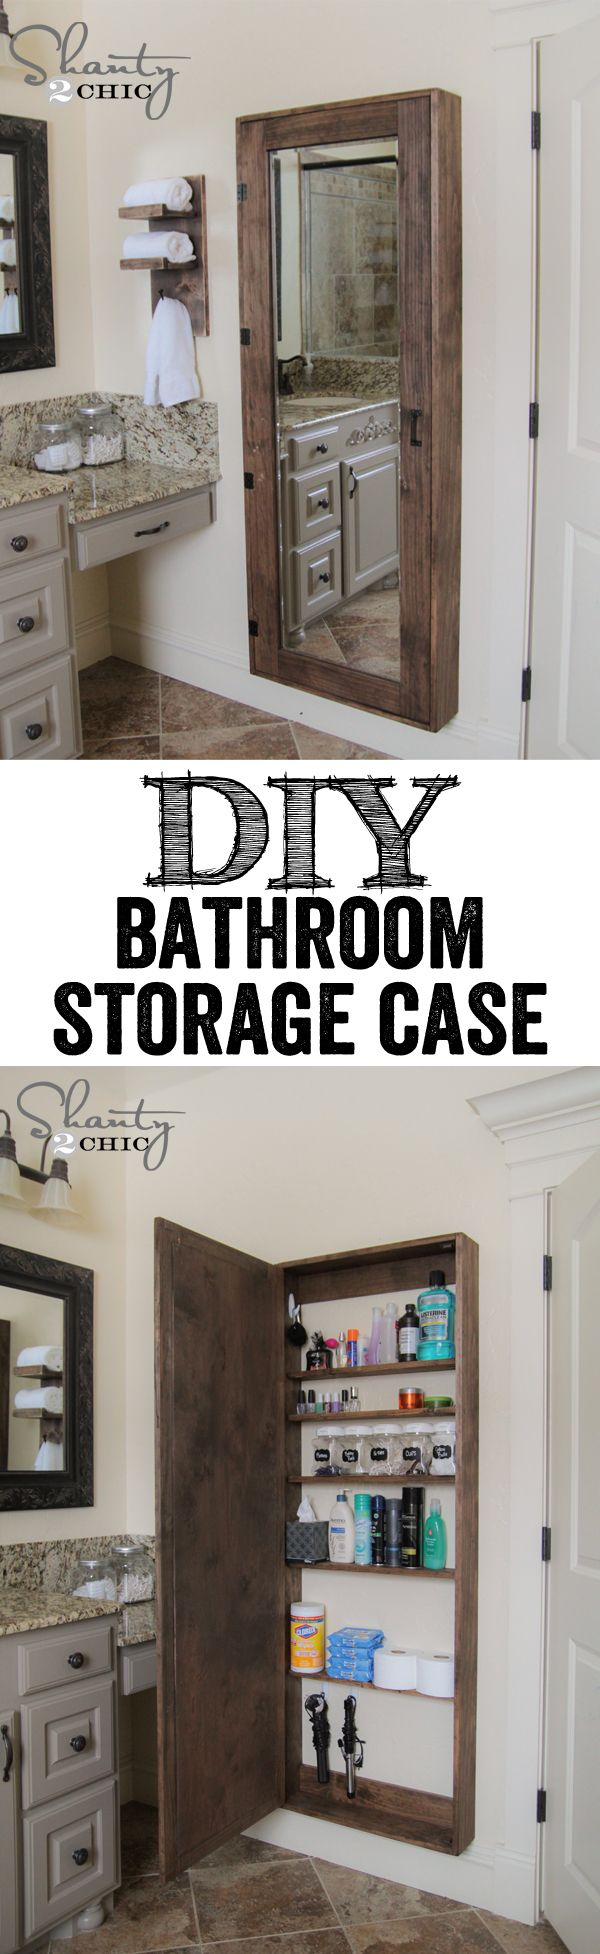 Rustic bathroom storage - Creative Ideas For An Organized Bathroom